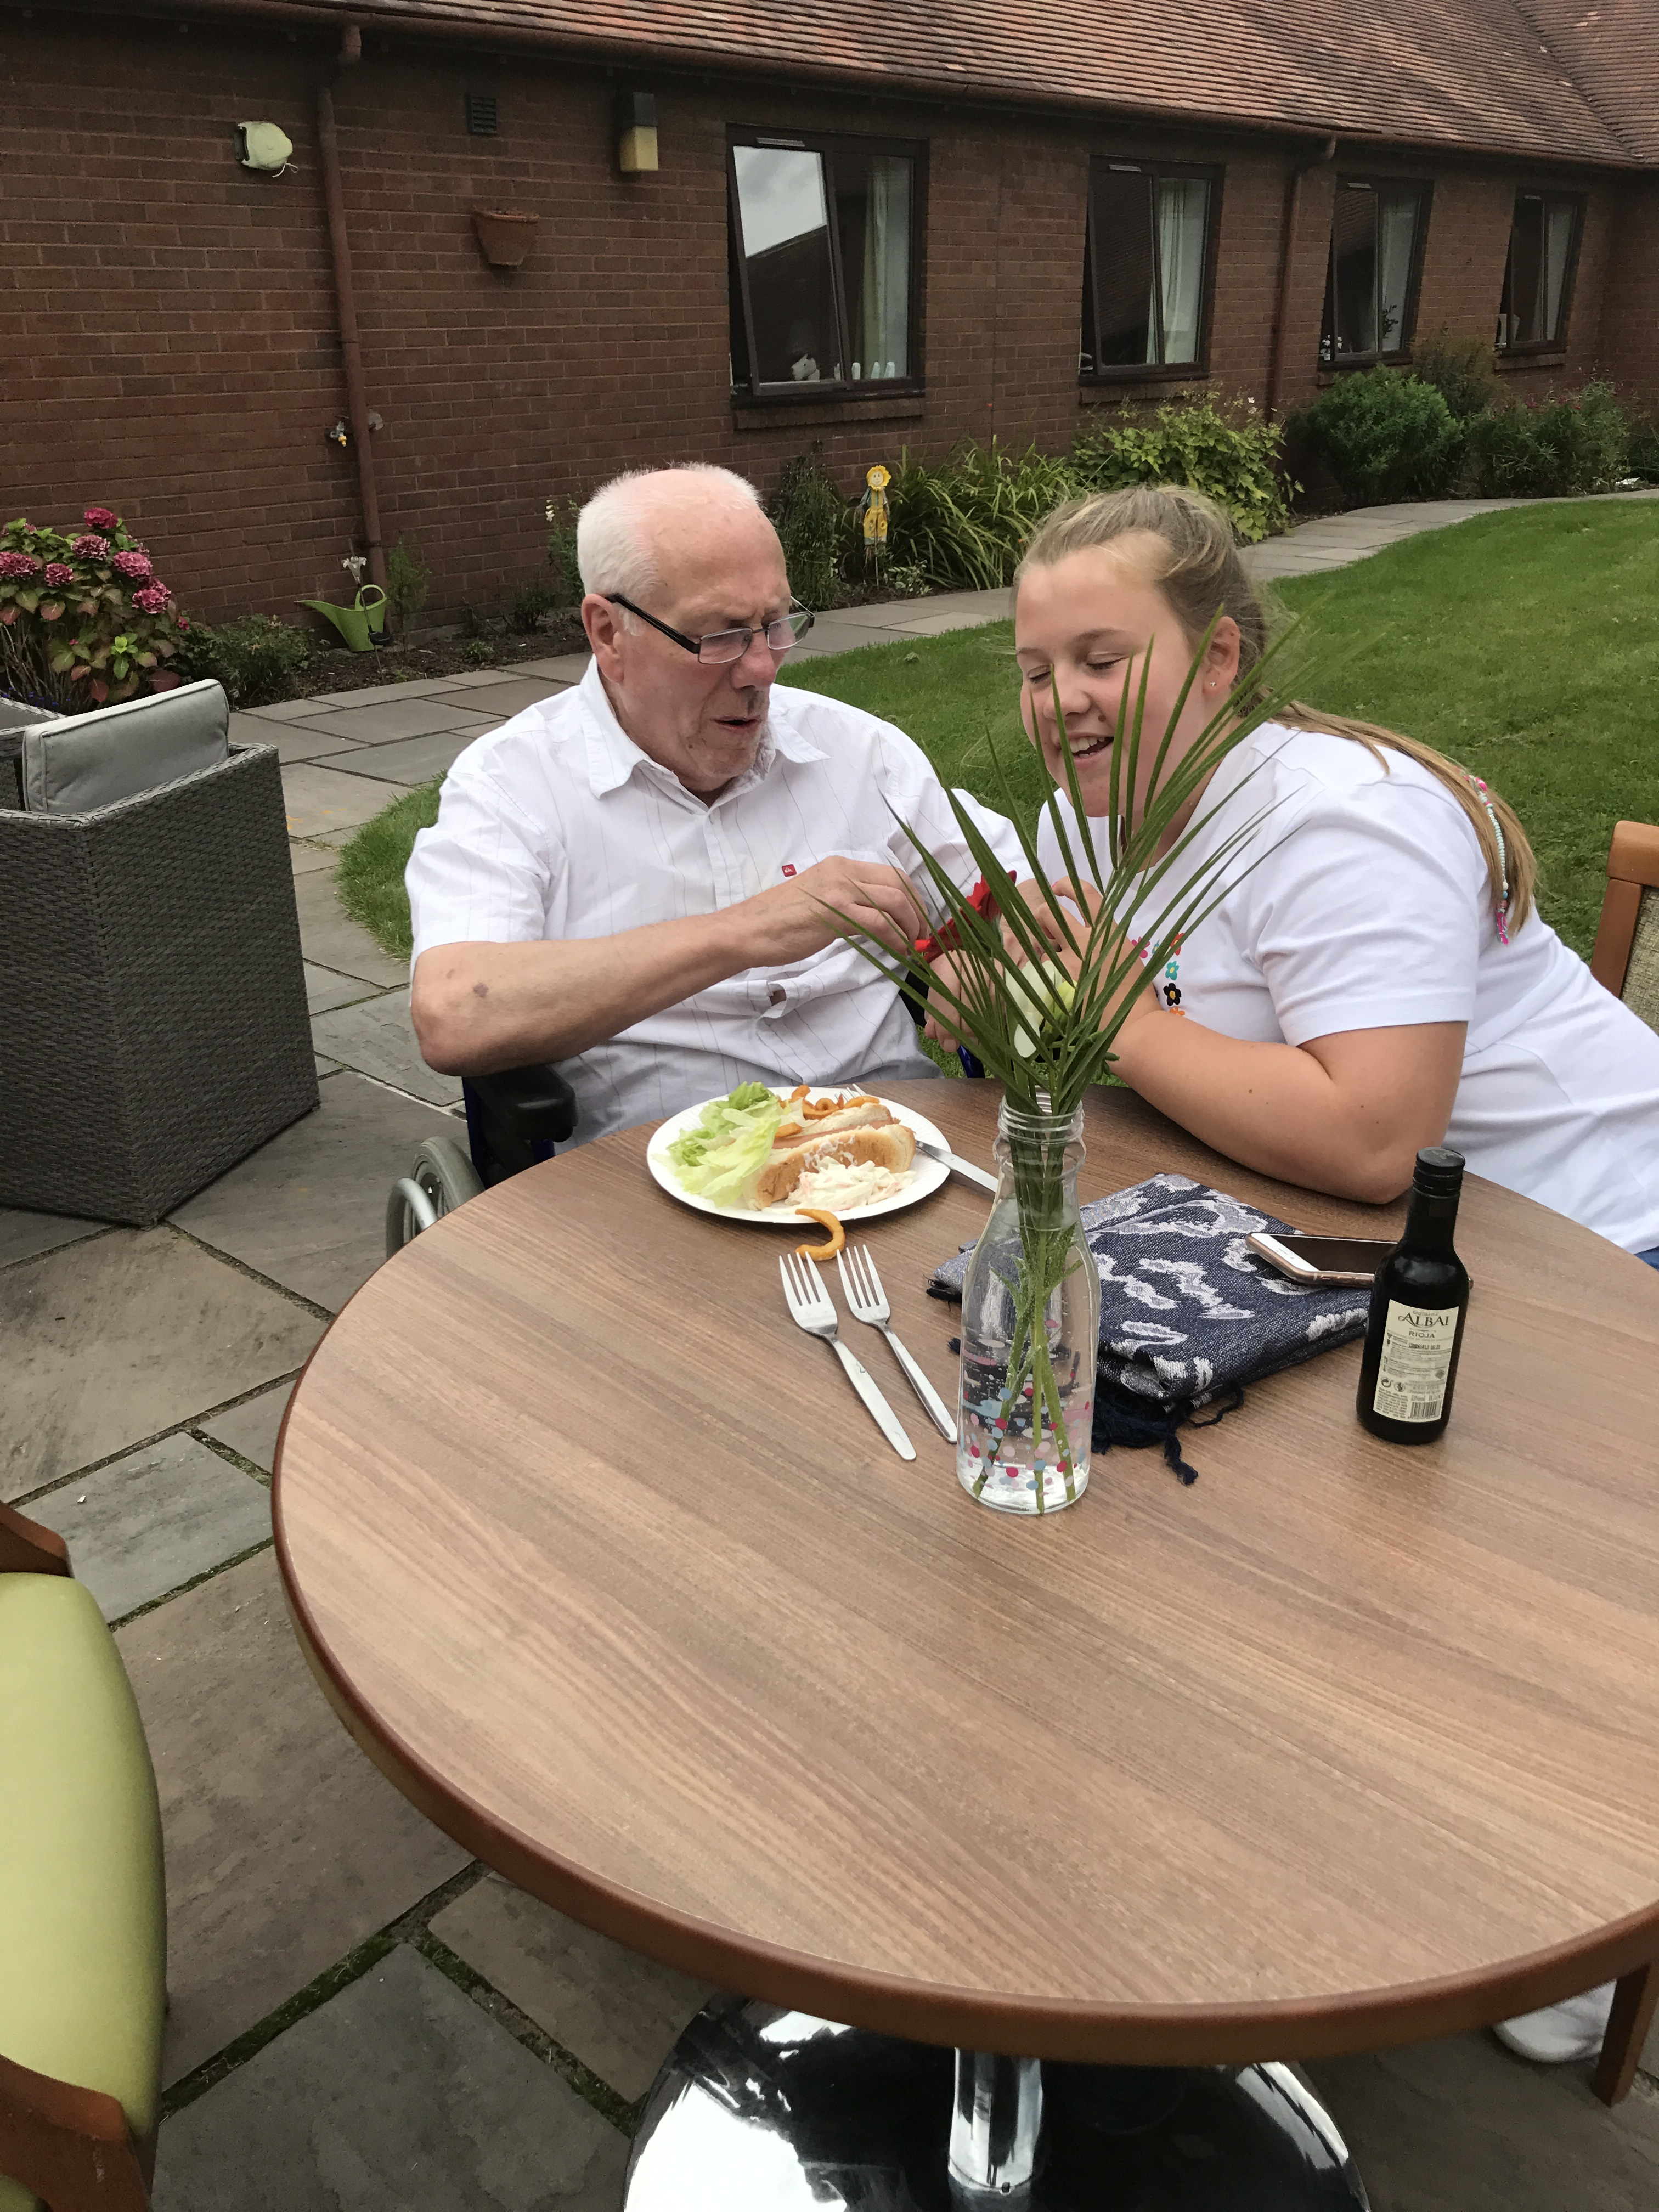 Bank Holiday Party Grace Court August 2017: Key Healthcare is dedicated to caring for elderly residents in safe. We have multiple dementia care homes including our care home middlesbrough, our care home St. Helen and care home saltburn. We excel in monitoring and improving care levels.